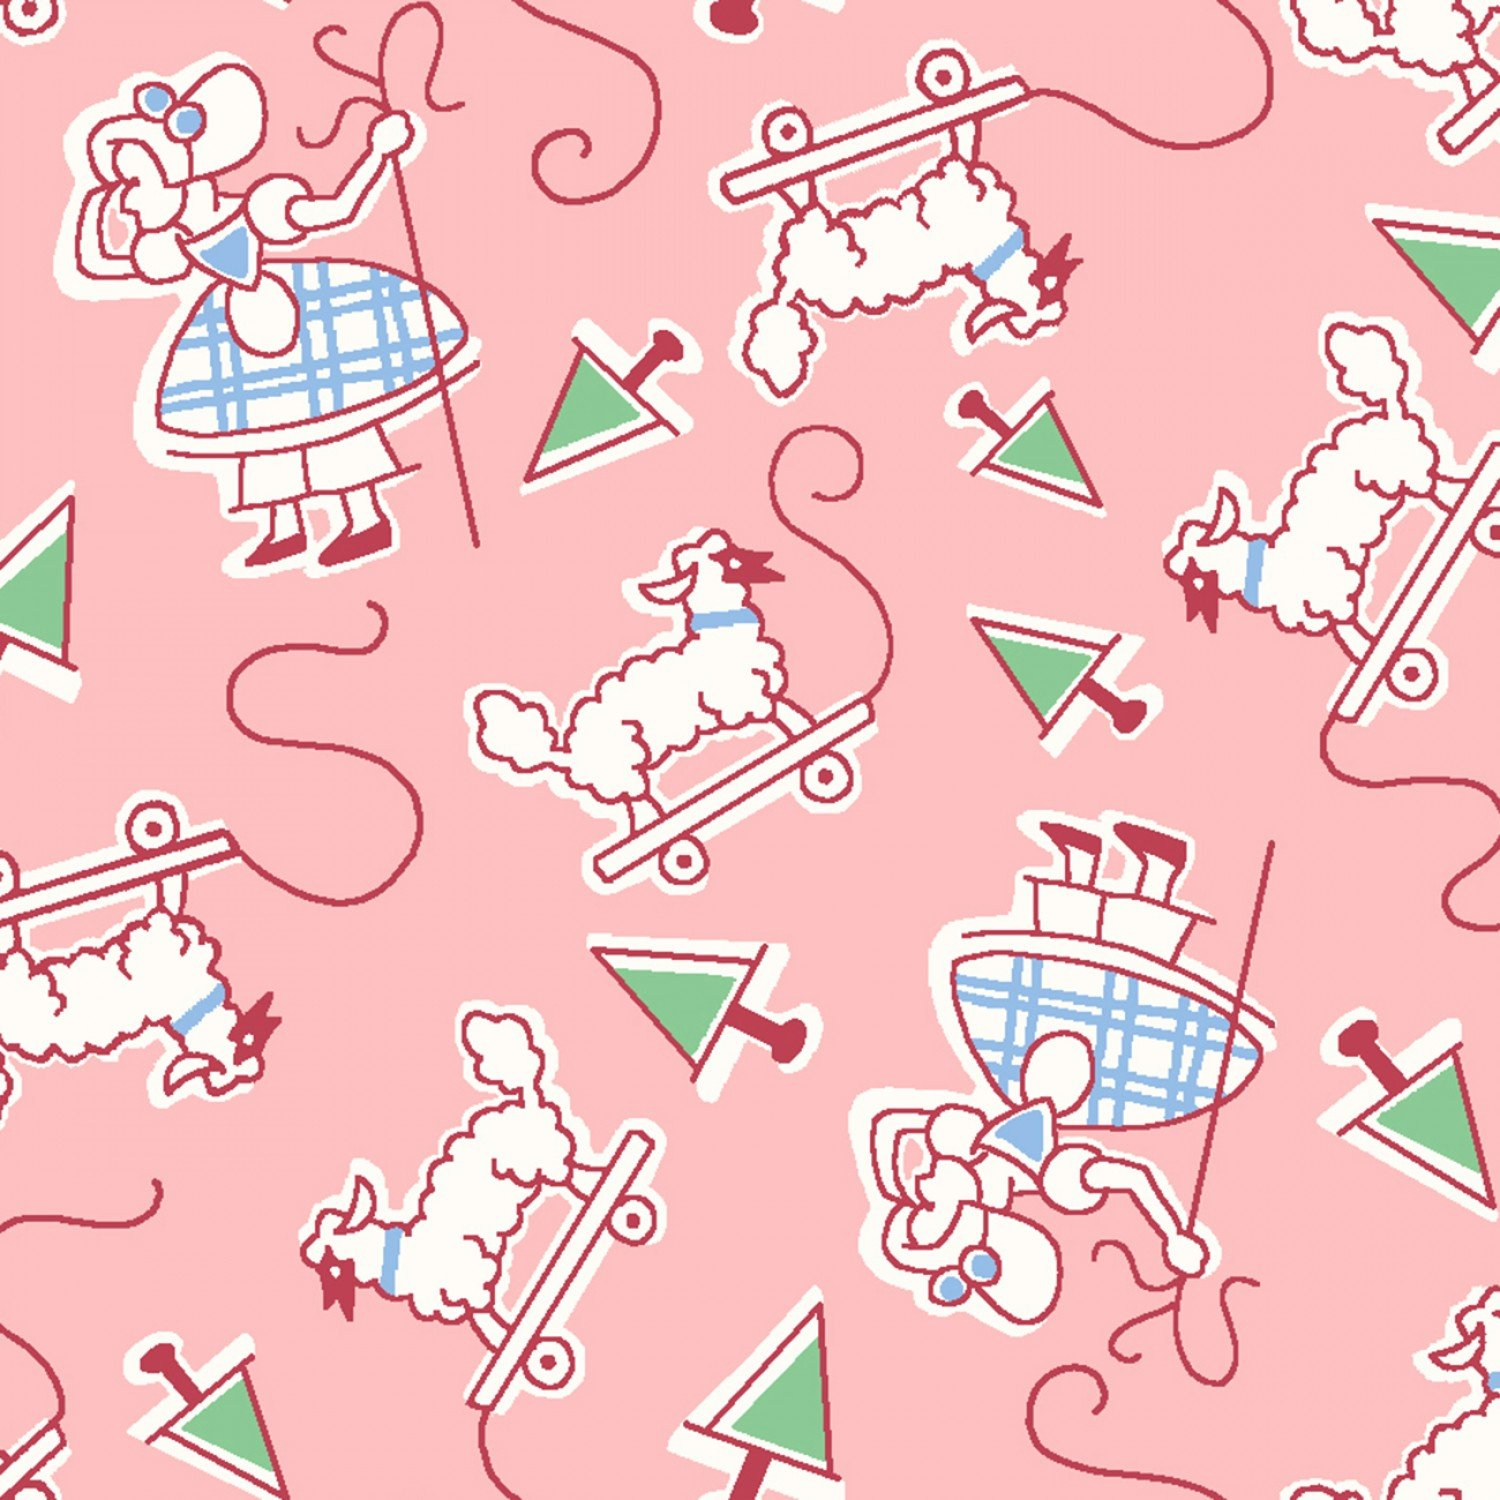 Little Bo Peep Nursery Rhymes Children's Fabric from Story Time Fabric Line